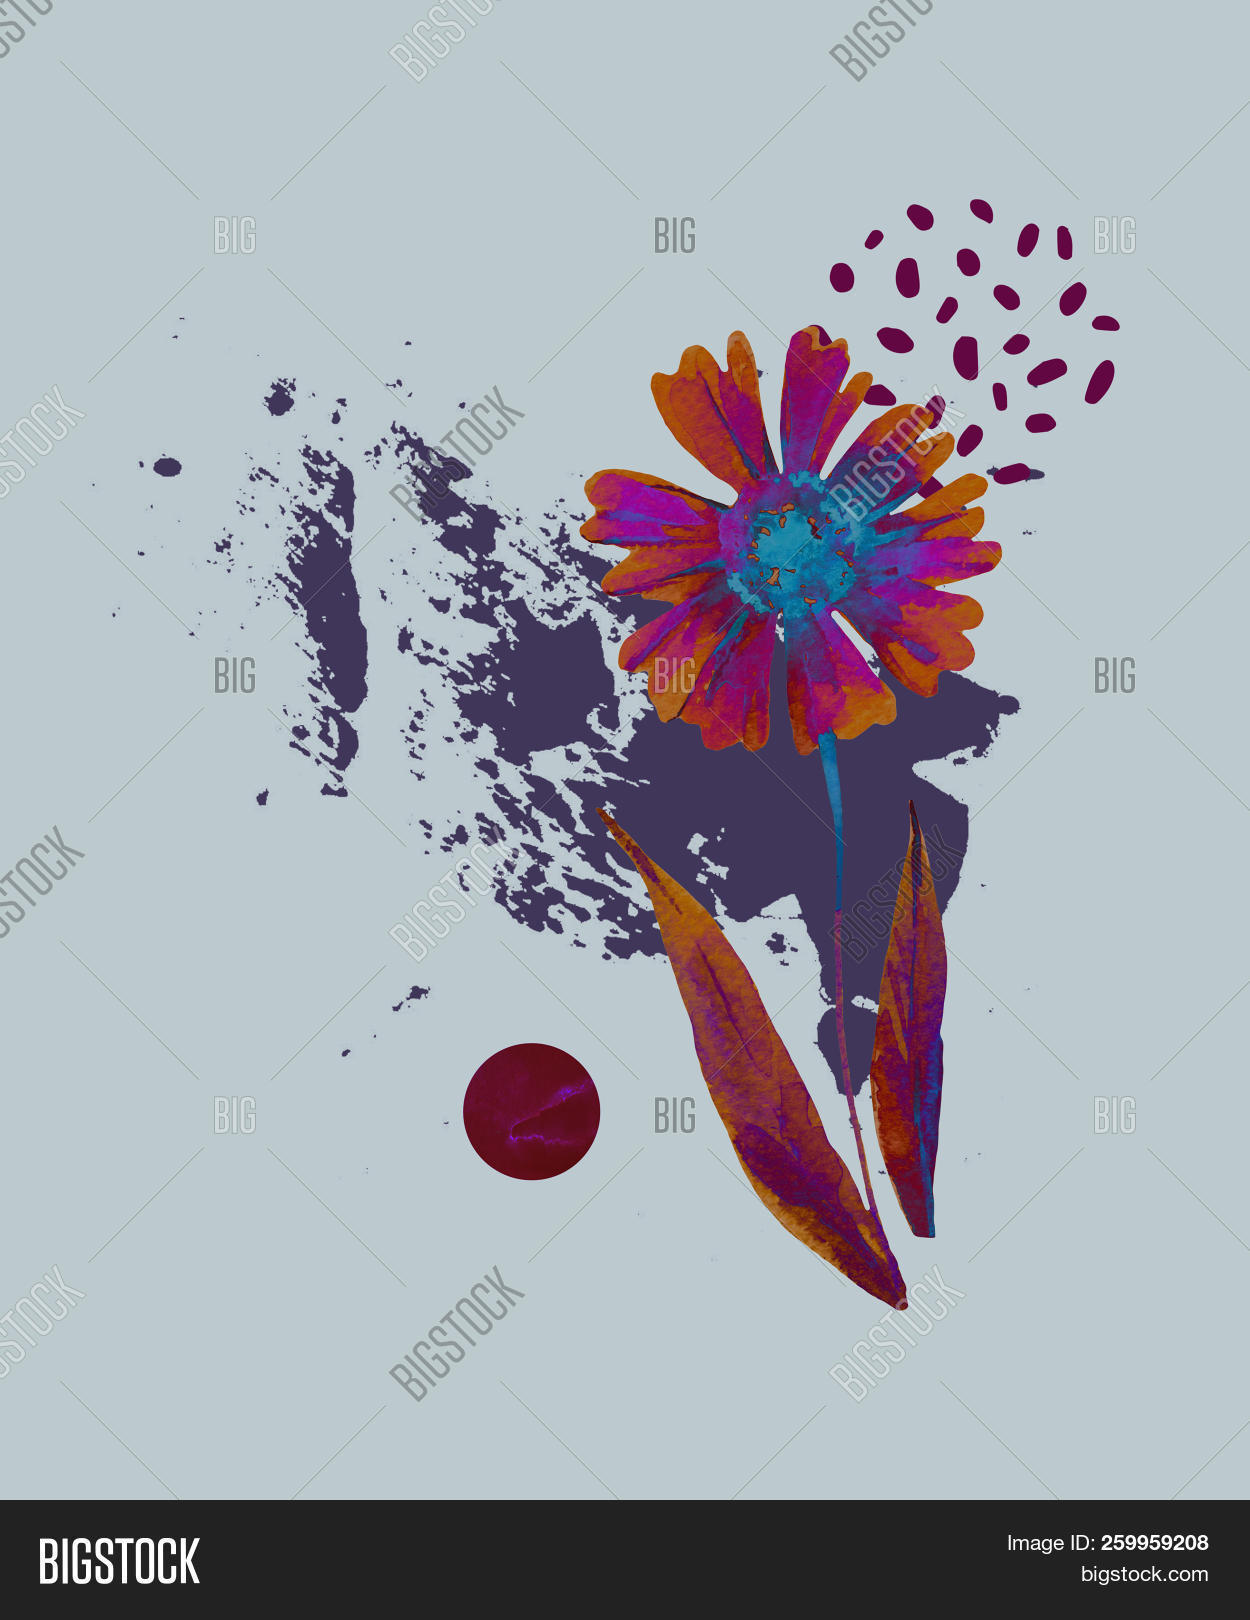 Abstract Floral Background Watercolor Fall Flowers And Leaves